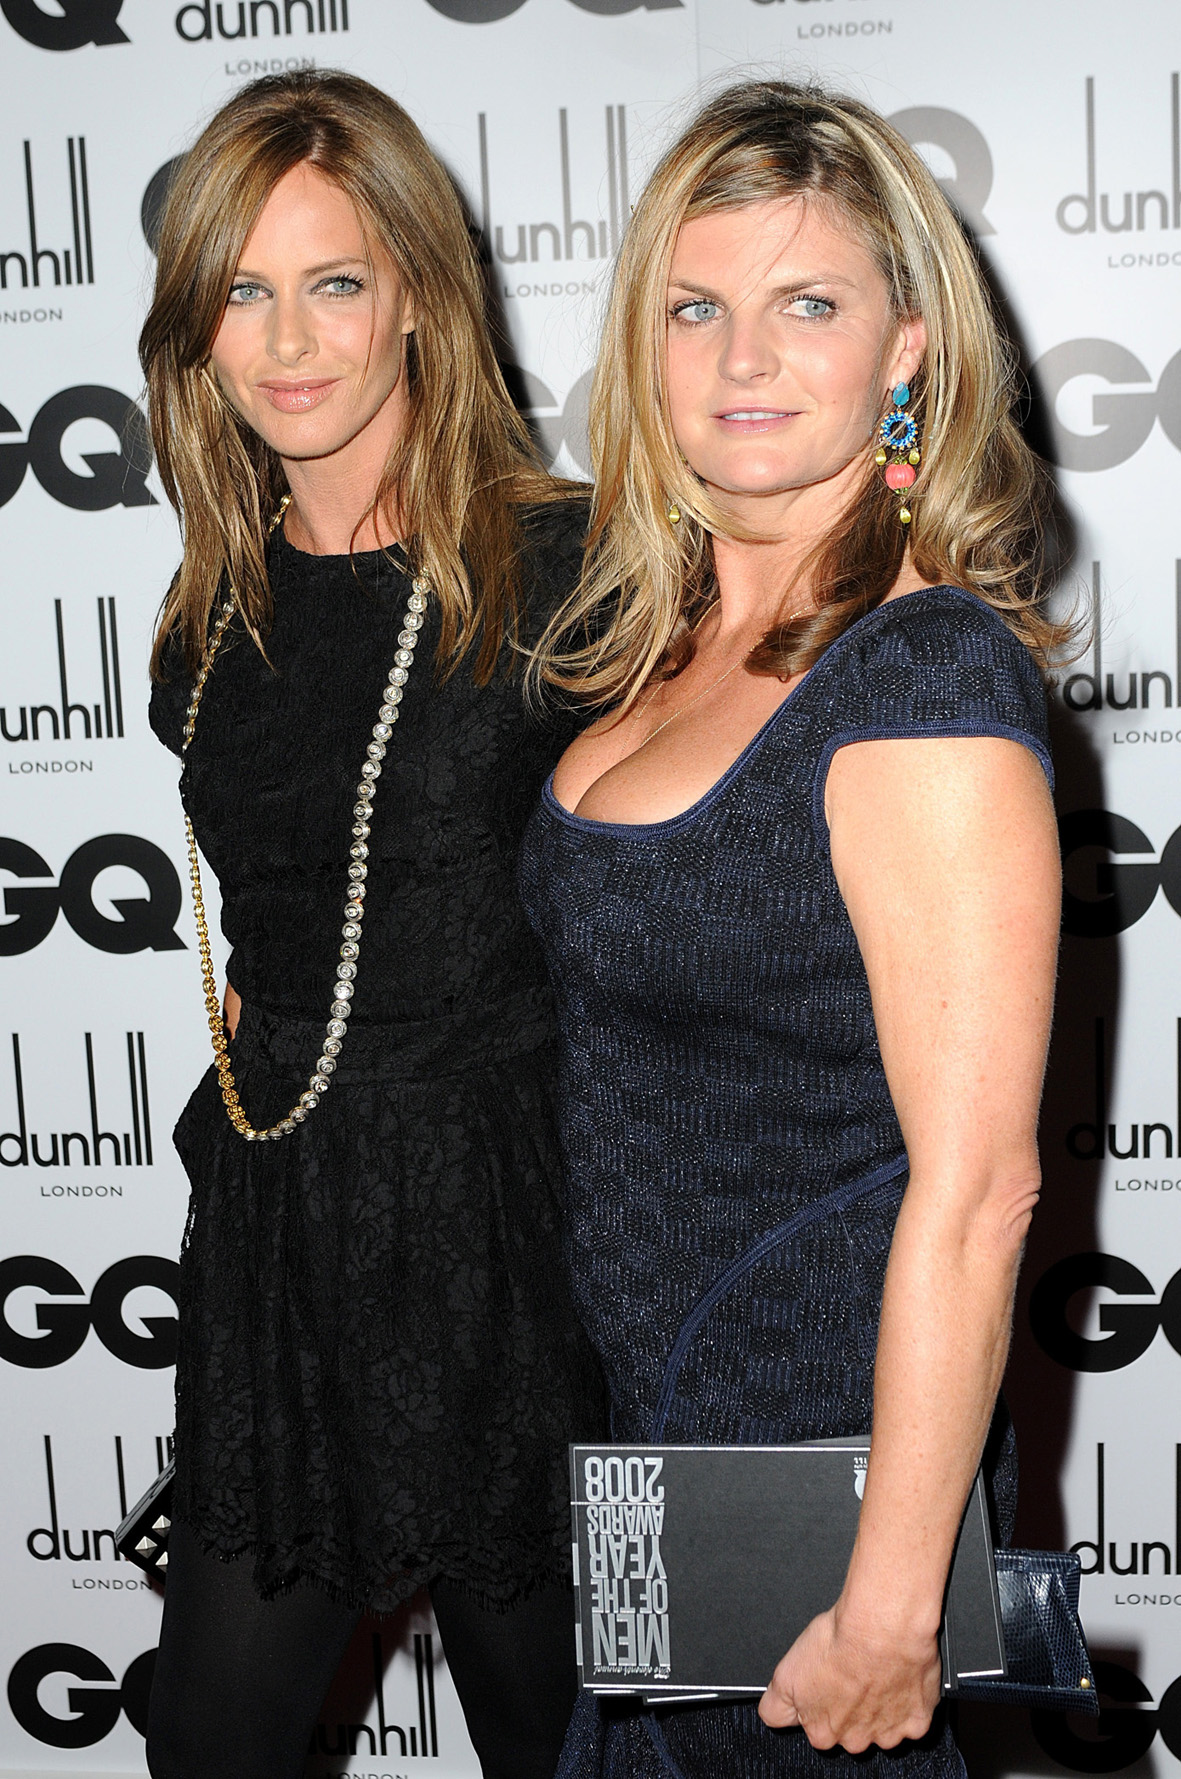 Trinny Woodall (L) and Susannah Constantine arrive for the GQ Men of the Year Awards 2008, Royal Opera House, Covent Garden, London. (Zac Hussein/PA)